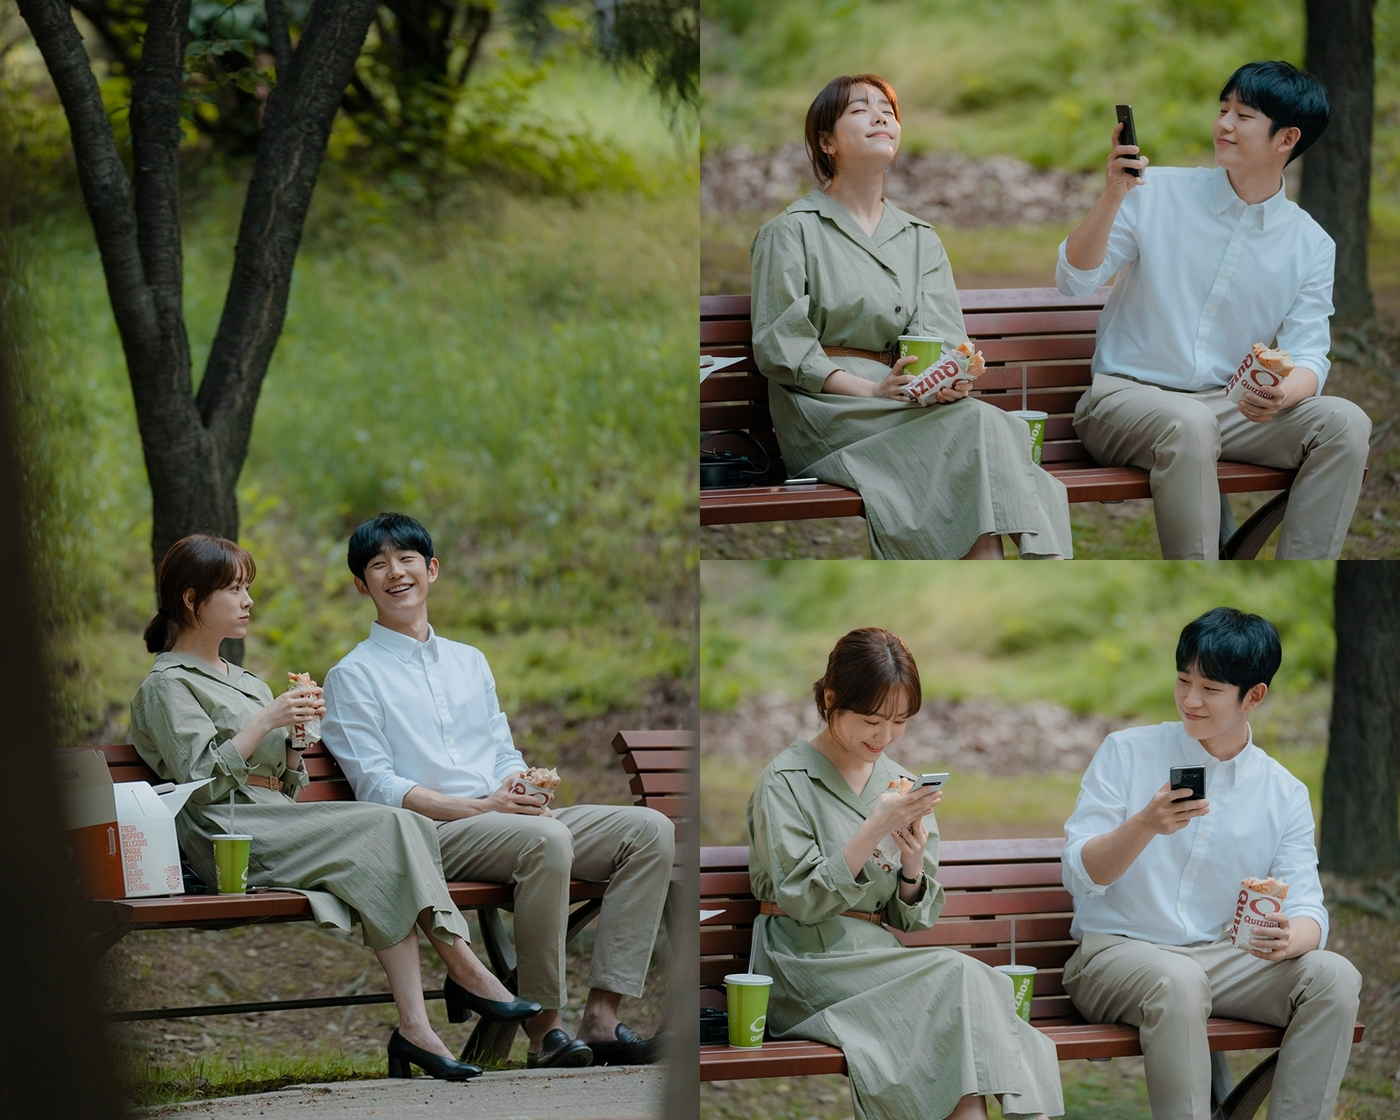 <p>Coming 26 Afternoon be broadcast MBC every Spring night(a Kim/directing inner panel analysis) 21, 22 in Han Ji-min(the act)and Jung Hae In(Keep the number the station)to get a Date unfolds.</p><p>Ahead of this set(Han Ji-min)and Keep the number(Jung Hae In)is a service to speak your mind confessed, and increasingly nearer. But the relationship between two people was supposed to know the parents of the opposite in the crisis it is not easy to future expected situation.</p><p>This 25 the published photos in this set and Keep the number with an affectionate lunch time to spend a moment locked in. Sunny, in the Park sit side by side, two people on the face of the bright smile and look of these heart to epilepsy so far.</p><p>Close your eyes and gazing up at the sky this home of happy expression and her pictures Keep the number of eyes in two peoples deep relationship to get a glimpse of them. The two Date throughout the bickering and sweet flow to form for viewers to make a will.</p><p>This day in the Park someone is two person of happy lunch time to be watching and to this day the two men encounter even more wonder to the show. And who of these Date to watch is, two people of the Date no one can go to these Broadcast even more in the questions collected.</p><p>Han Ji-min and Jung Hae In of fresh laughter filled the Date, the scene is coming 26, 8 p.m. the 55-minute broadcast is Spring nightcan be found at.</p>